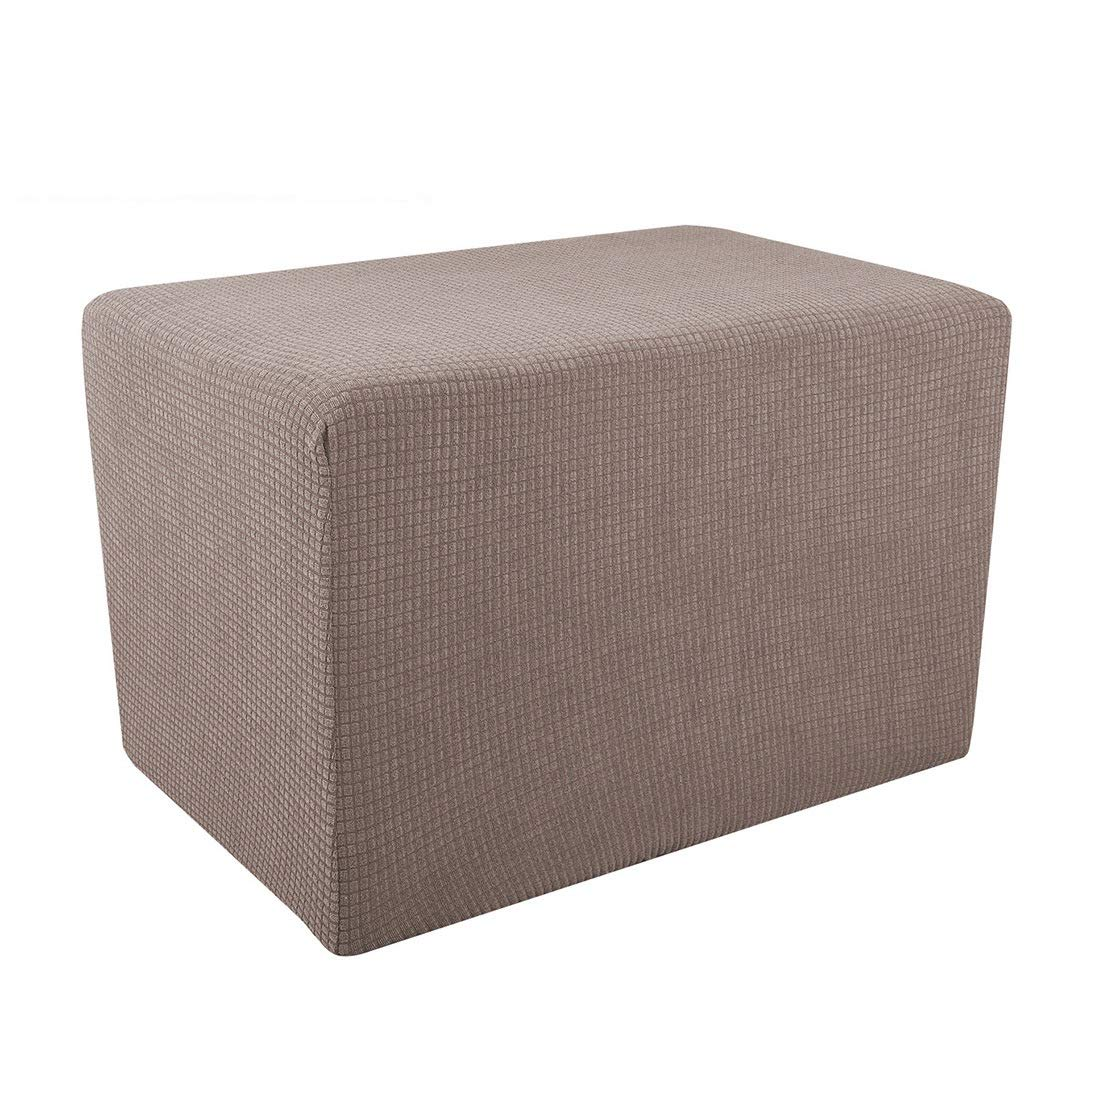 Freahap Ottoman Slipcover Jacquard Footstool Cover Elastic Bench Protector Stretch Knit Fabric Breathable Coffee S 2Pcs by Freahap